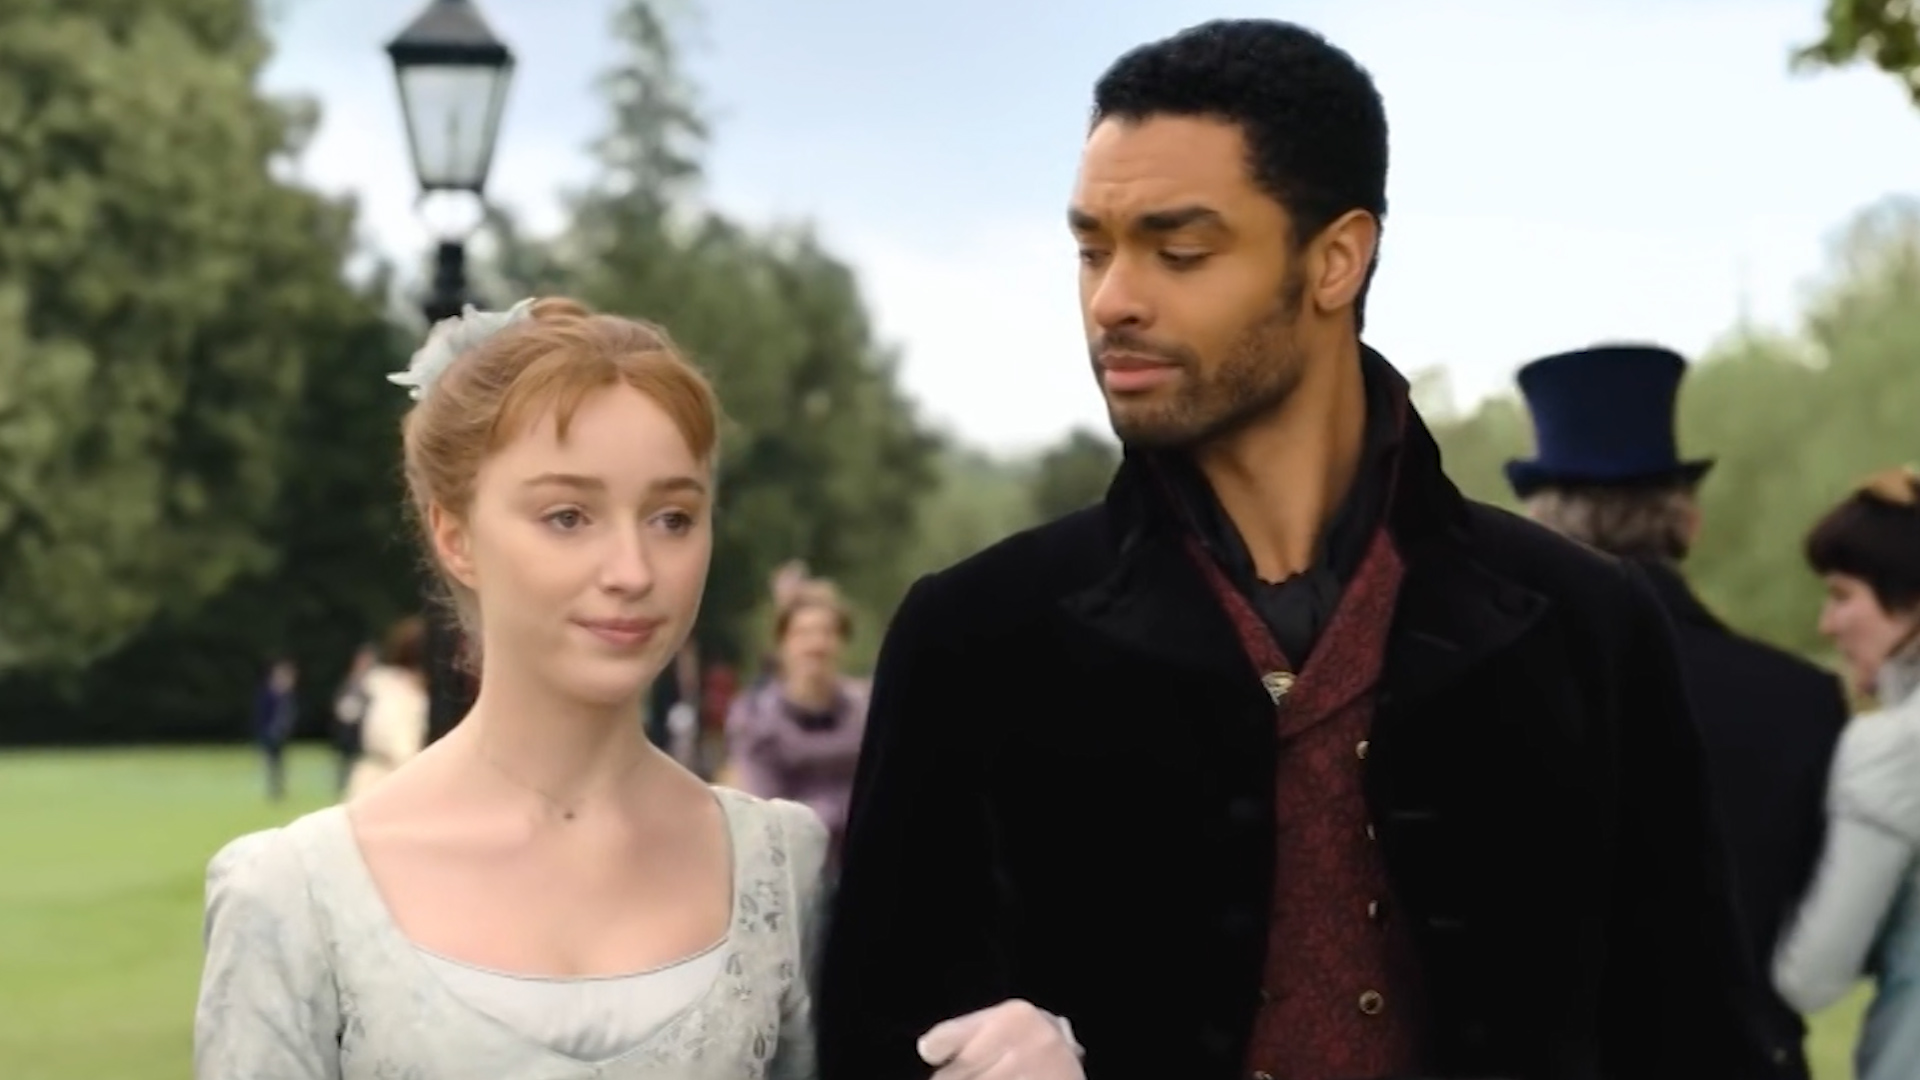 'Bridgerton' viewers spot a historical mistake in scenes